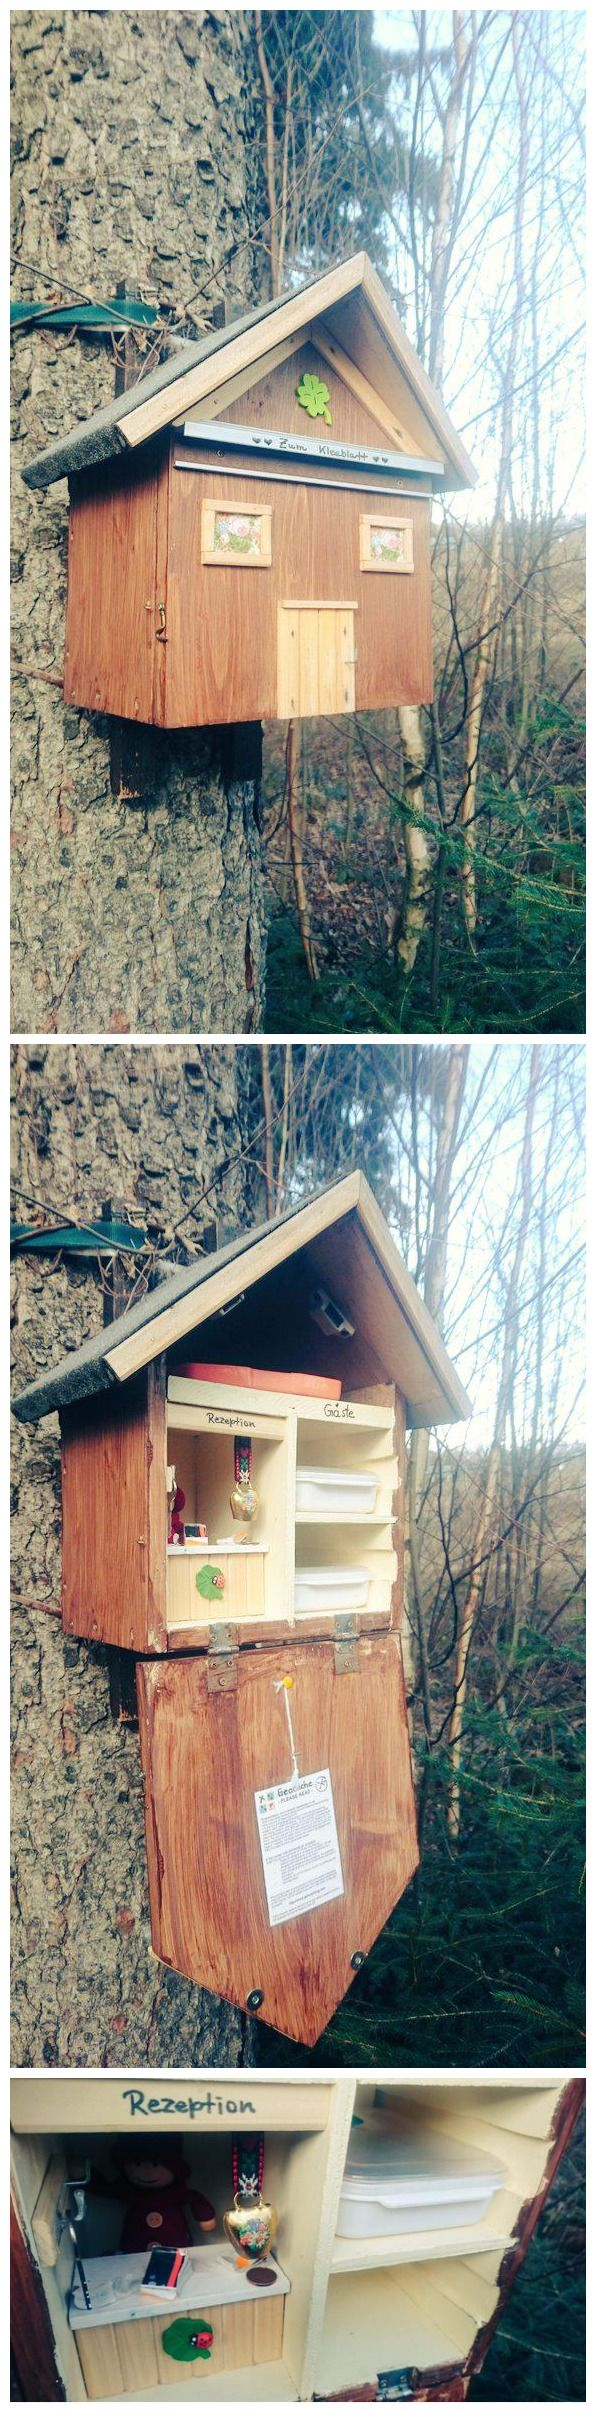 Very nice TB Hotel in Saxony! (Pics by Lila.Wolke on Twitter combined & pinned to Travel Bug Hotel Geocaches - http://www.pinterest.com/islandbuttons/travel-bug-hotel-geocaches/) #IBGCp